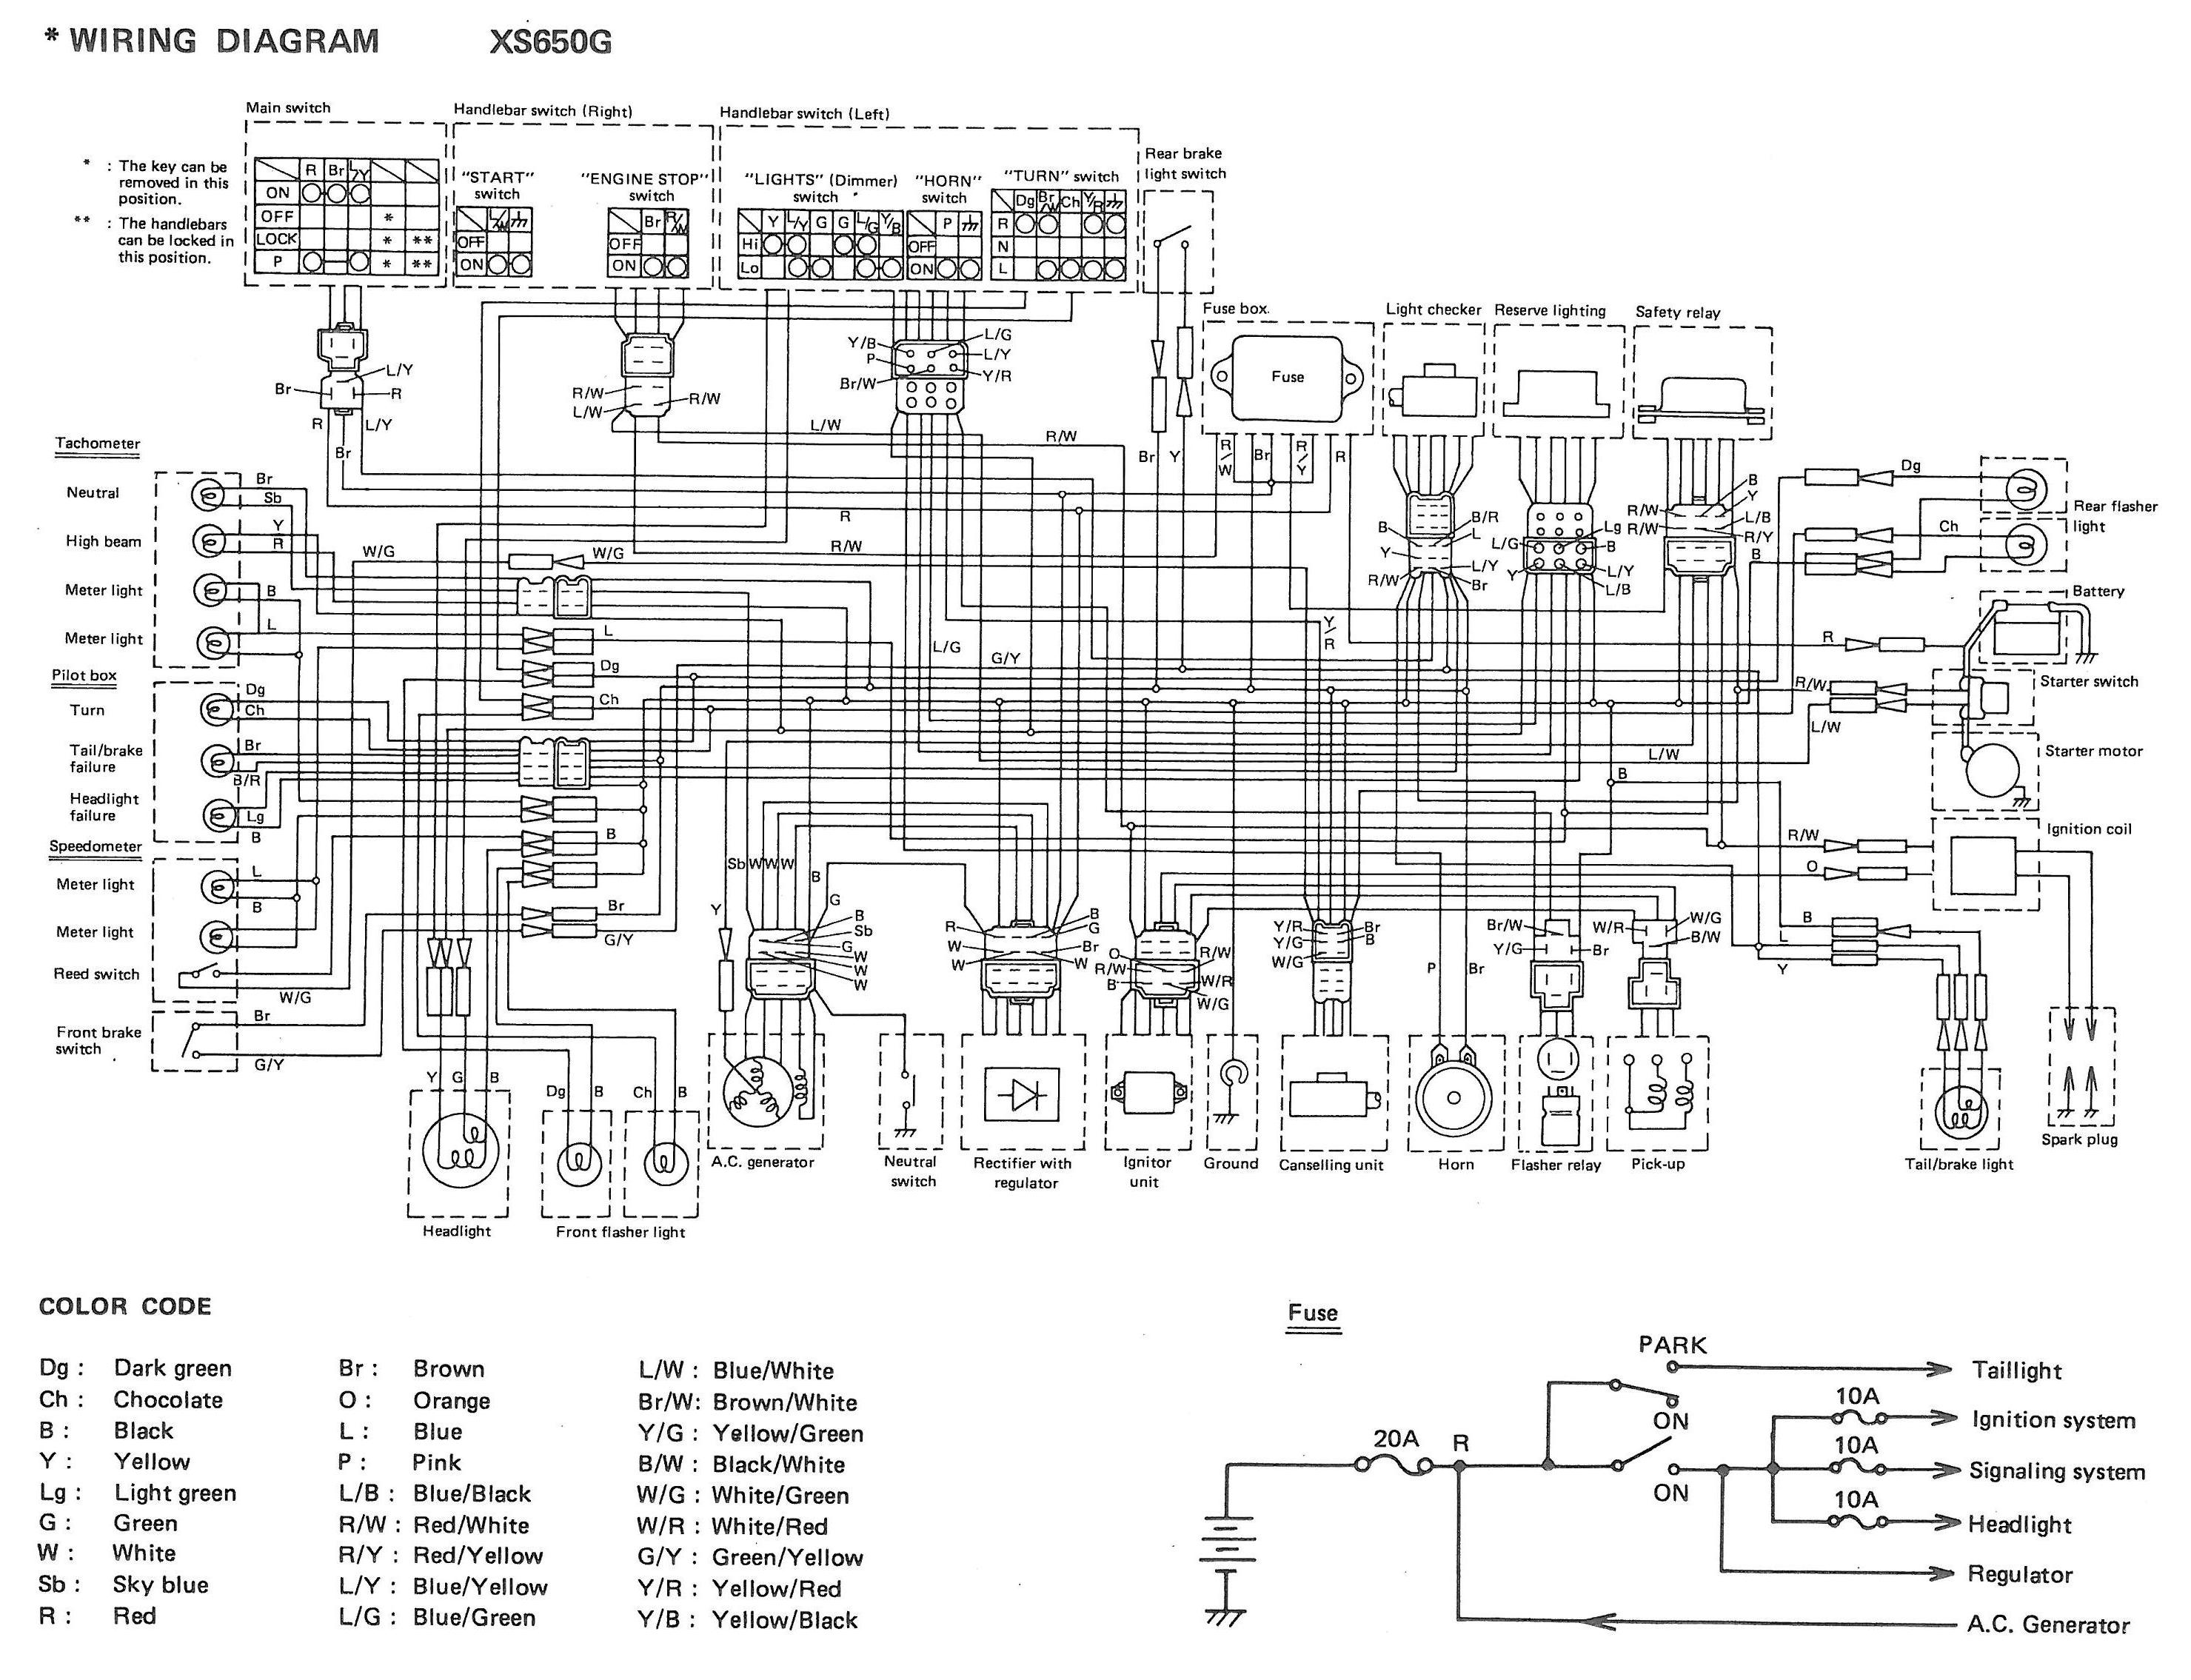 yamaha xs650 wiring diagram double capacitor single phase motor 80 xs650g and sg diagrams thexscafe